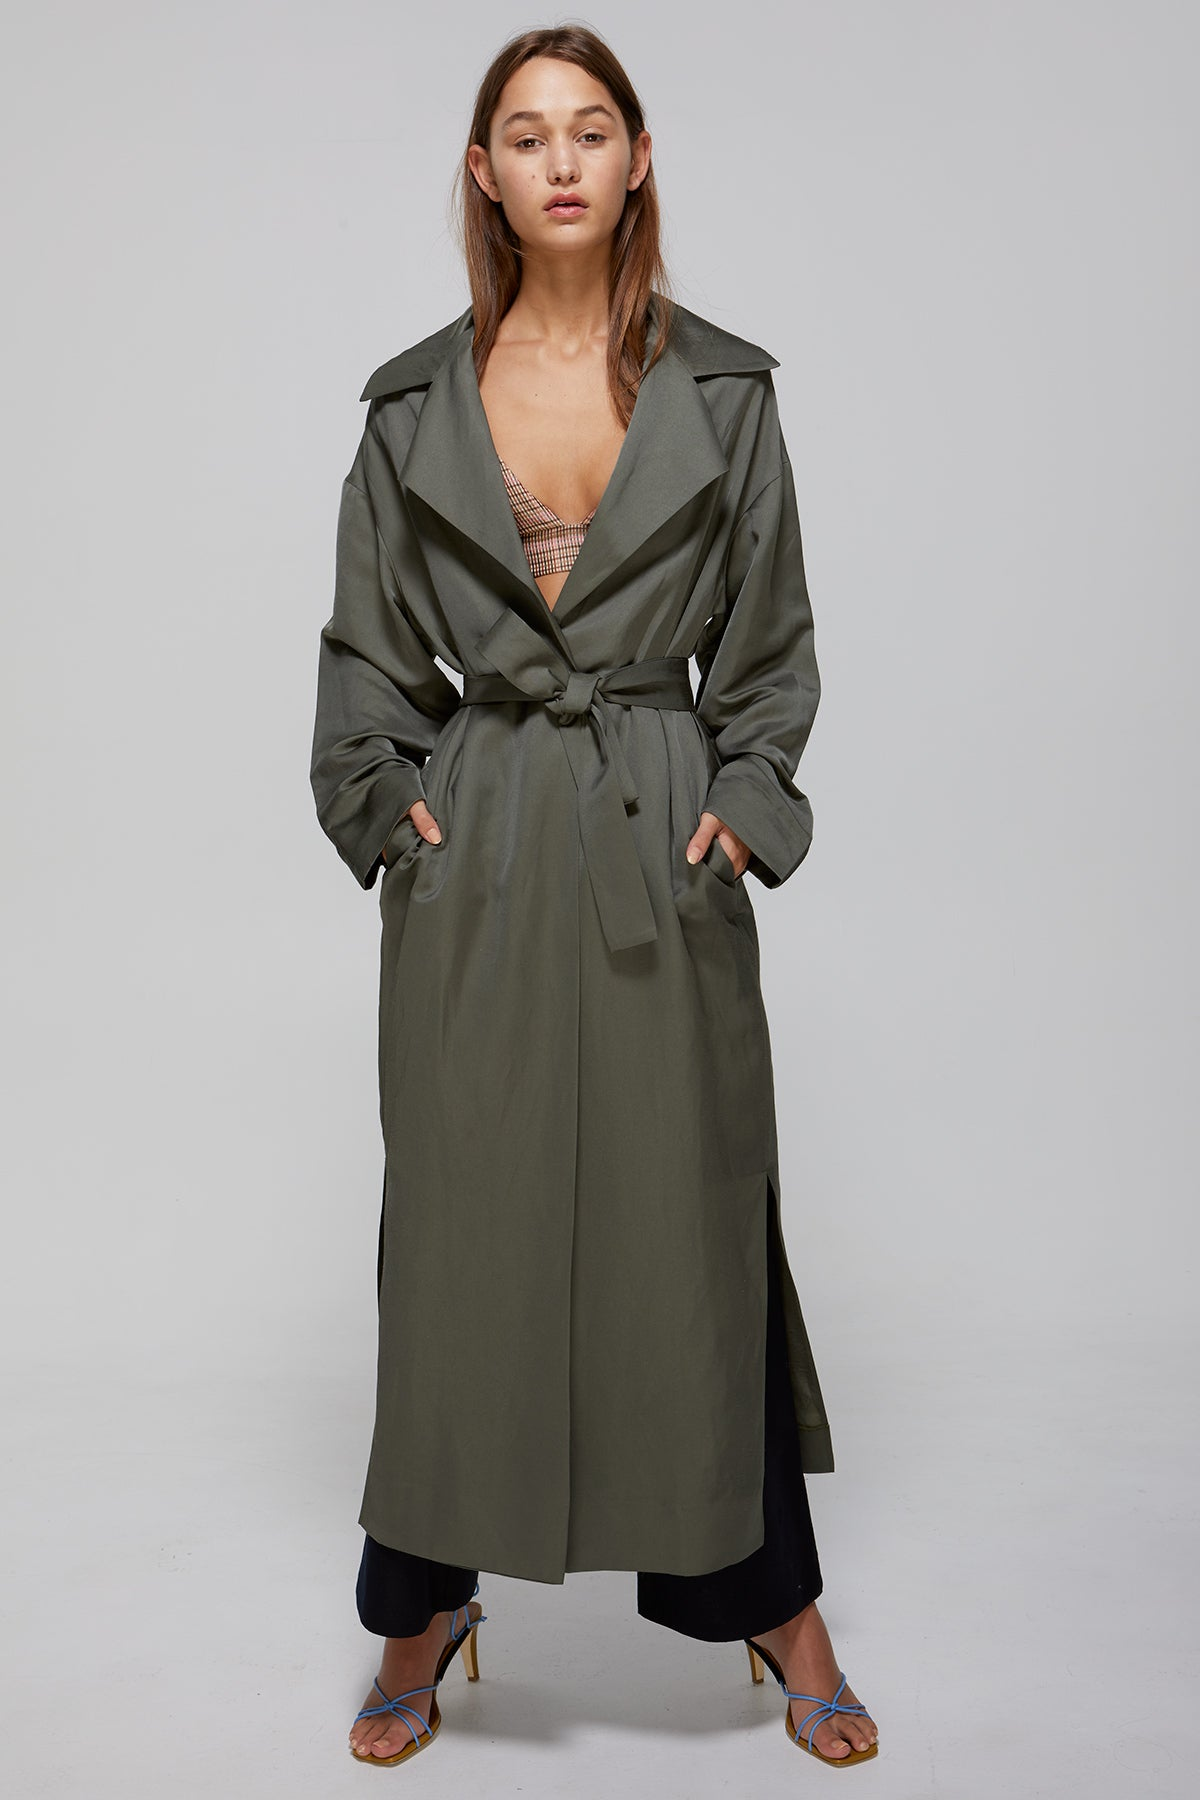 Carter Coat Gregory SS20 Collection NZ Sustainable Fashion Design